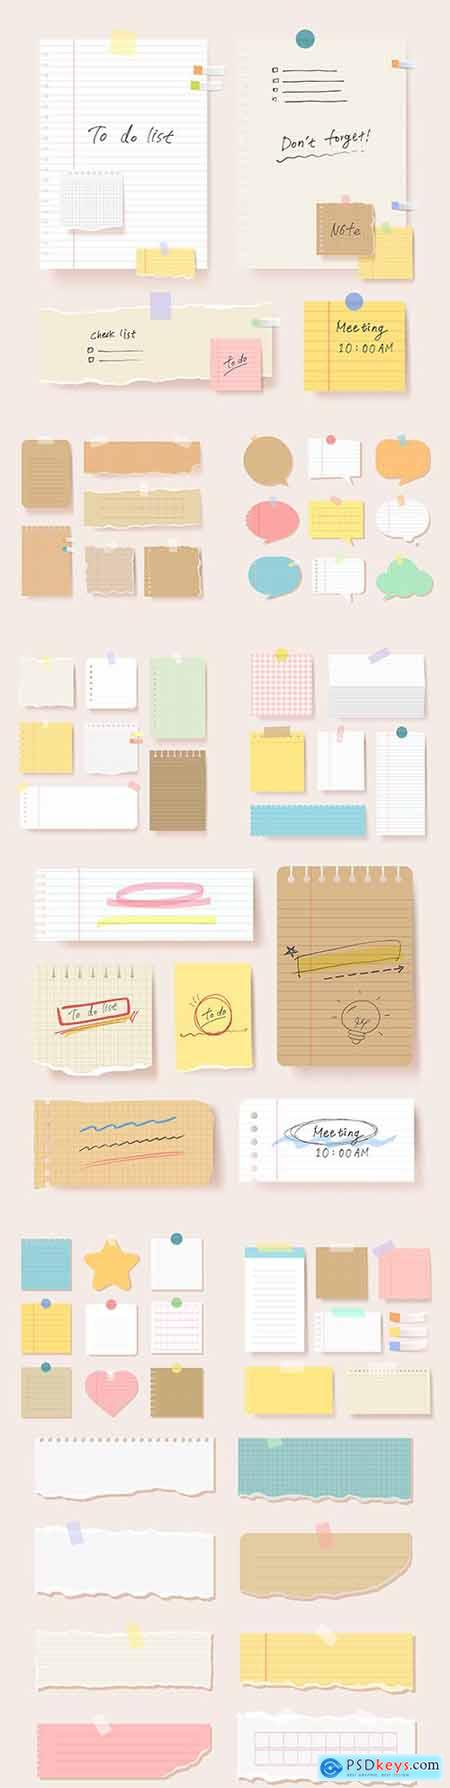 Clipping papers blank pages notebook illustration